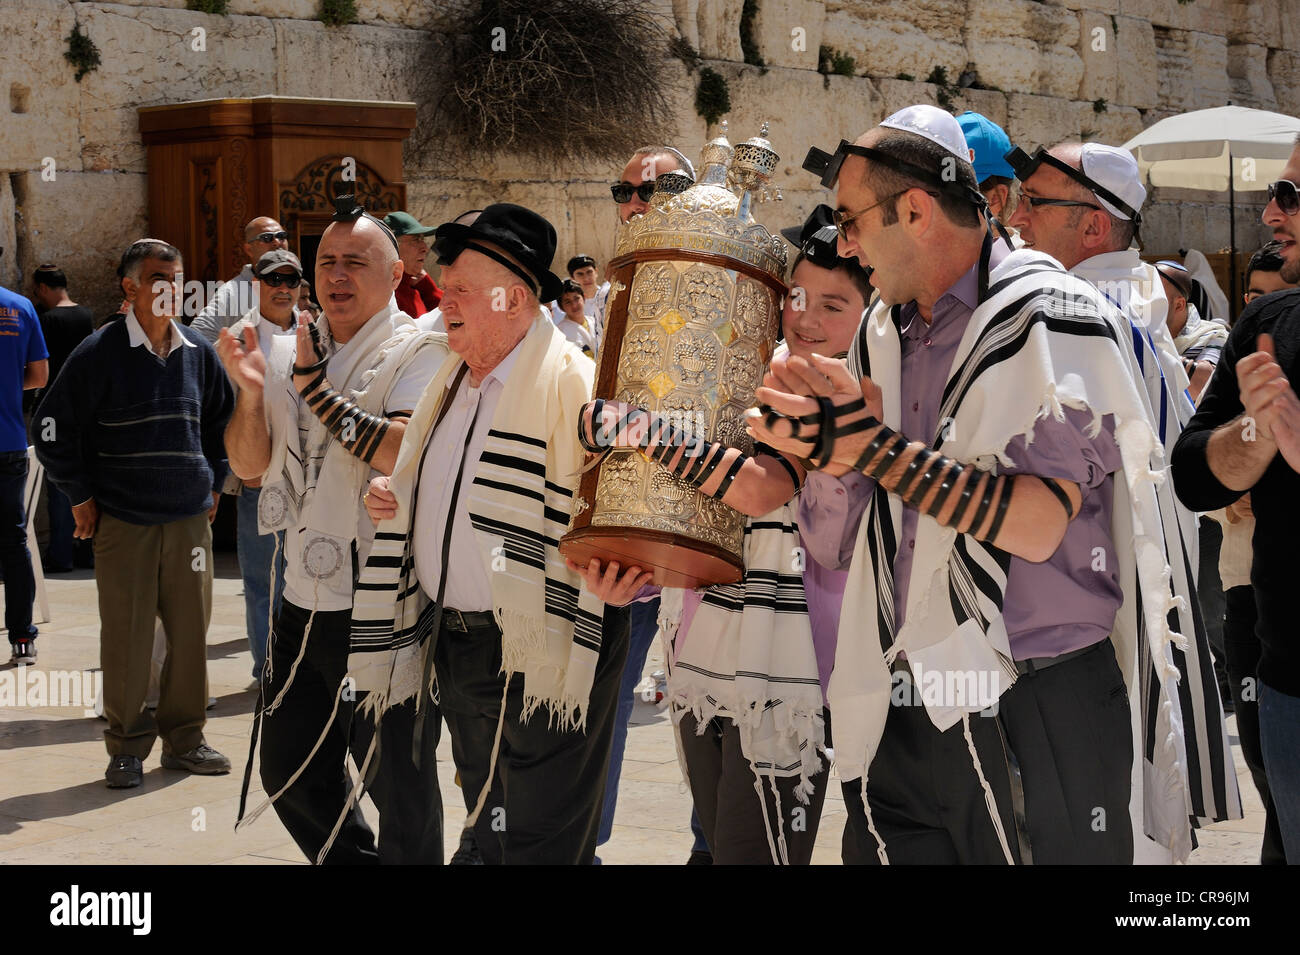 Bar Mitzvah celebration at the Western or Wailing Wall in the direction of the Jewish Quarter, boy is carrying the - Stock Image